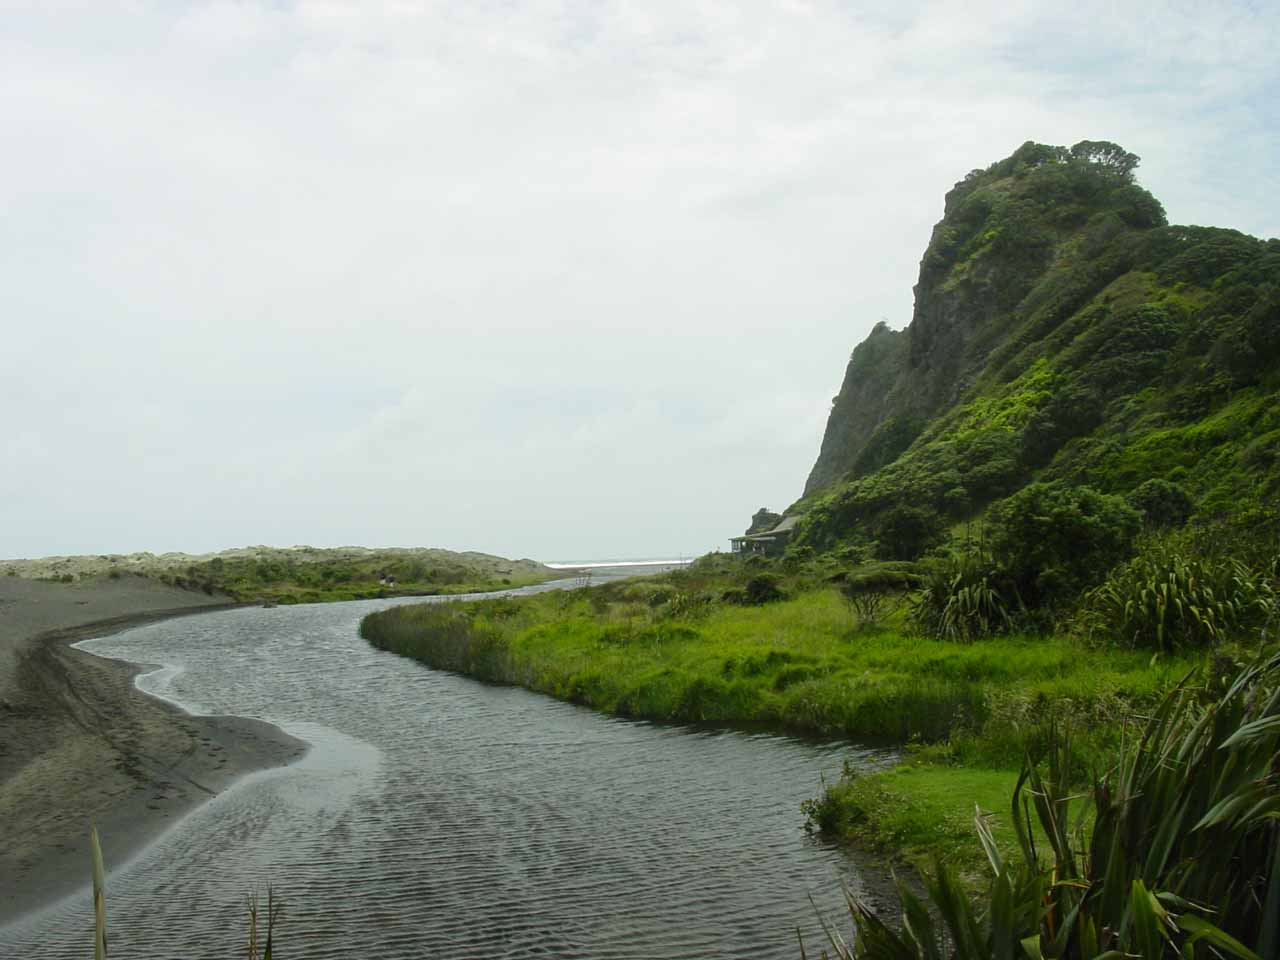 After hiking to Karekare Falls, I made a brief walk towards the quiet Karekare Beach following this stream